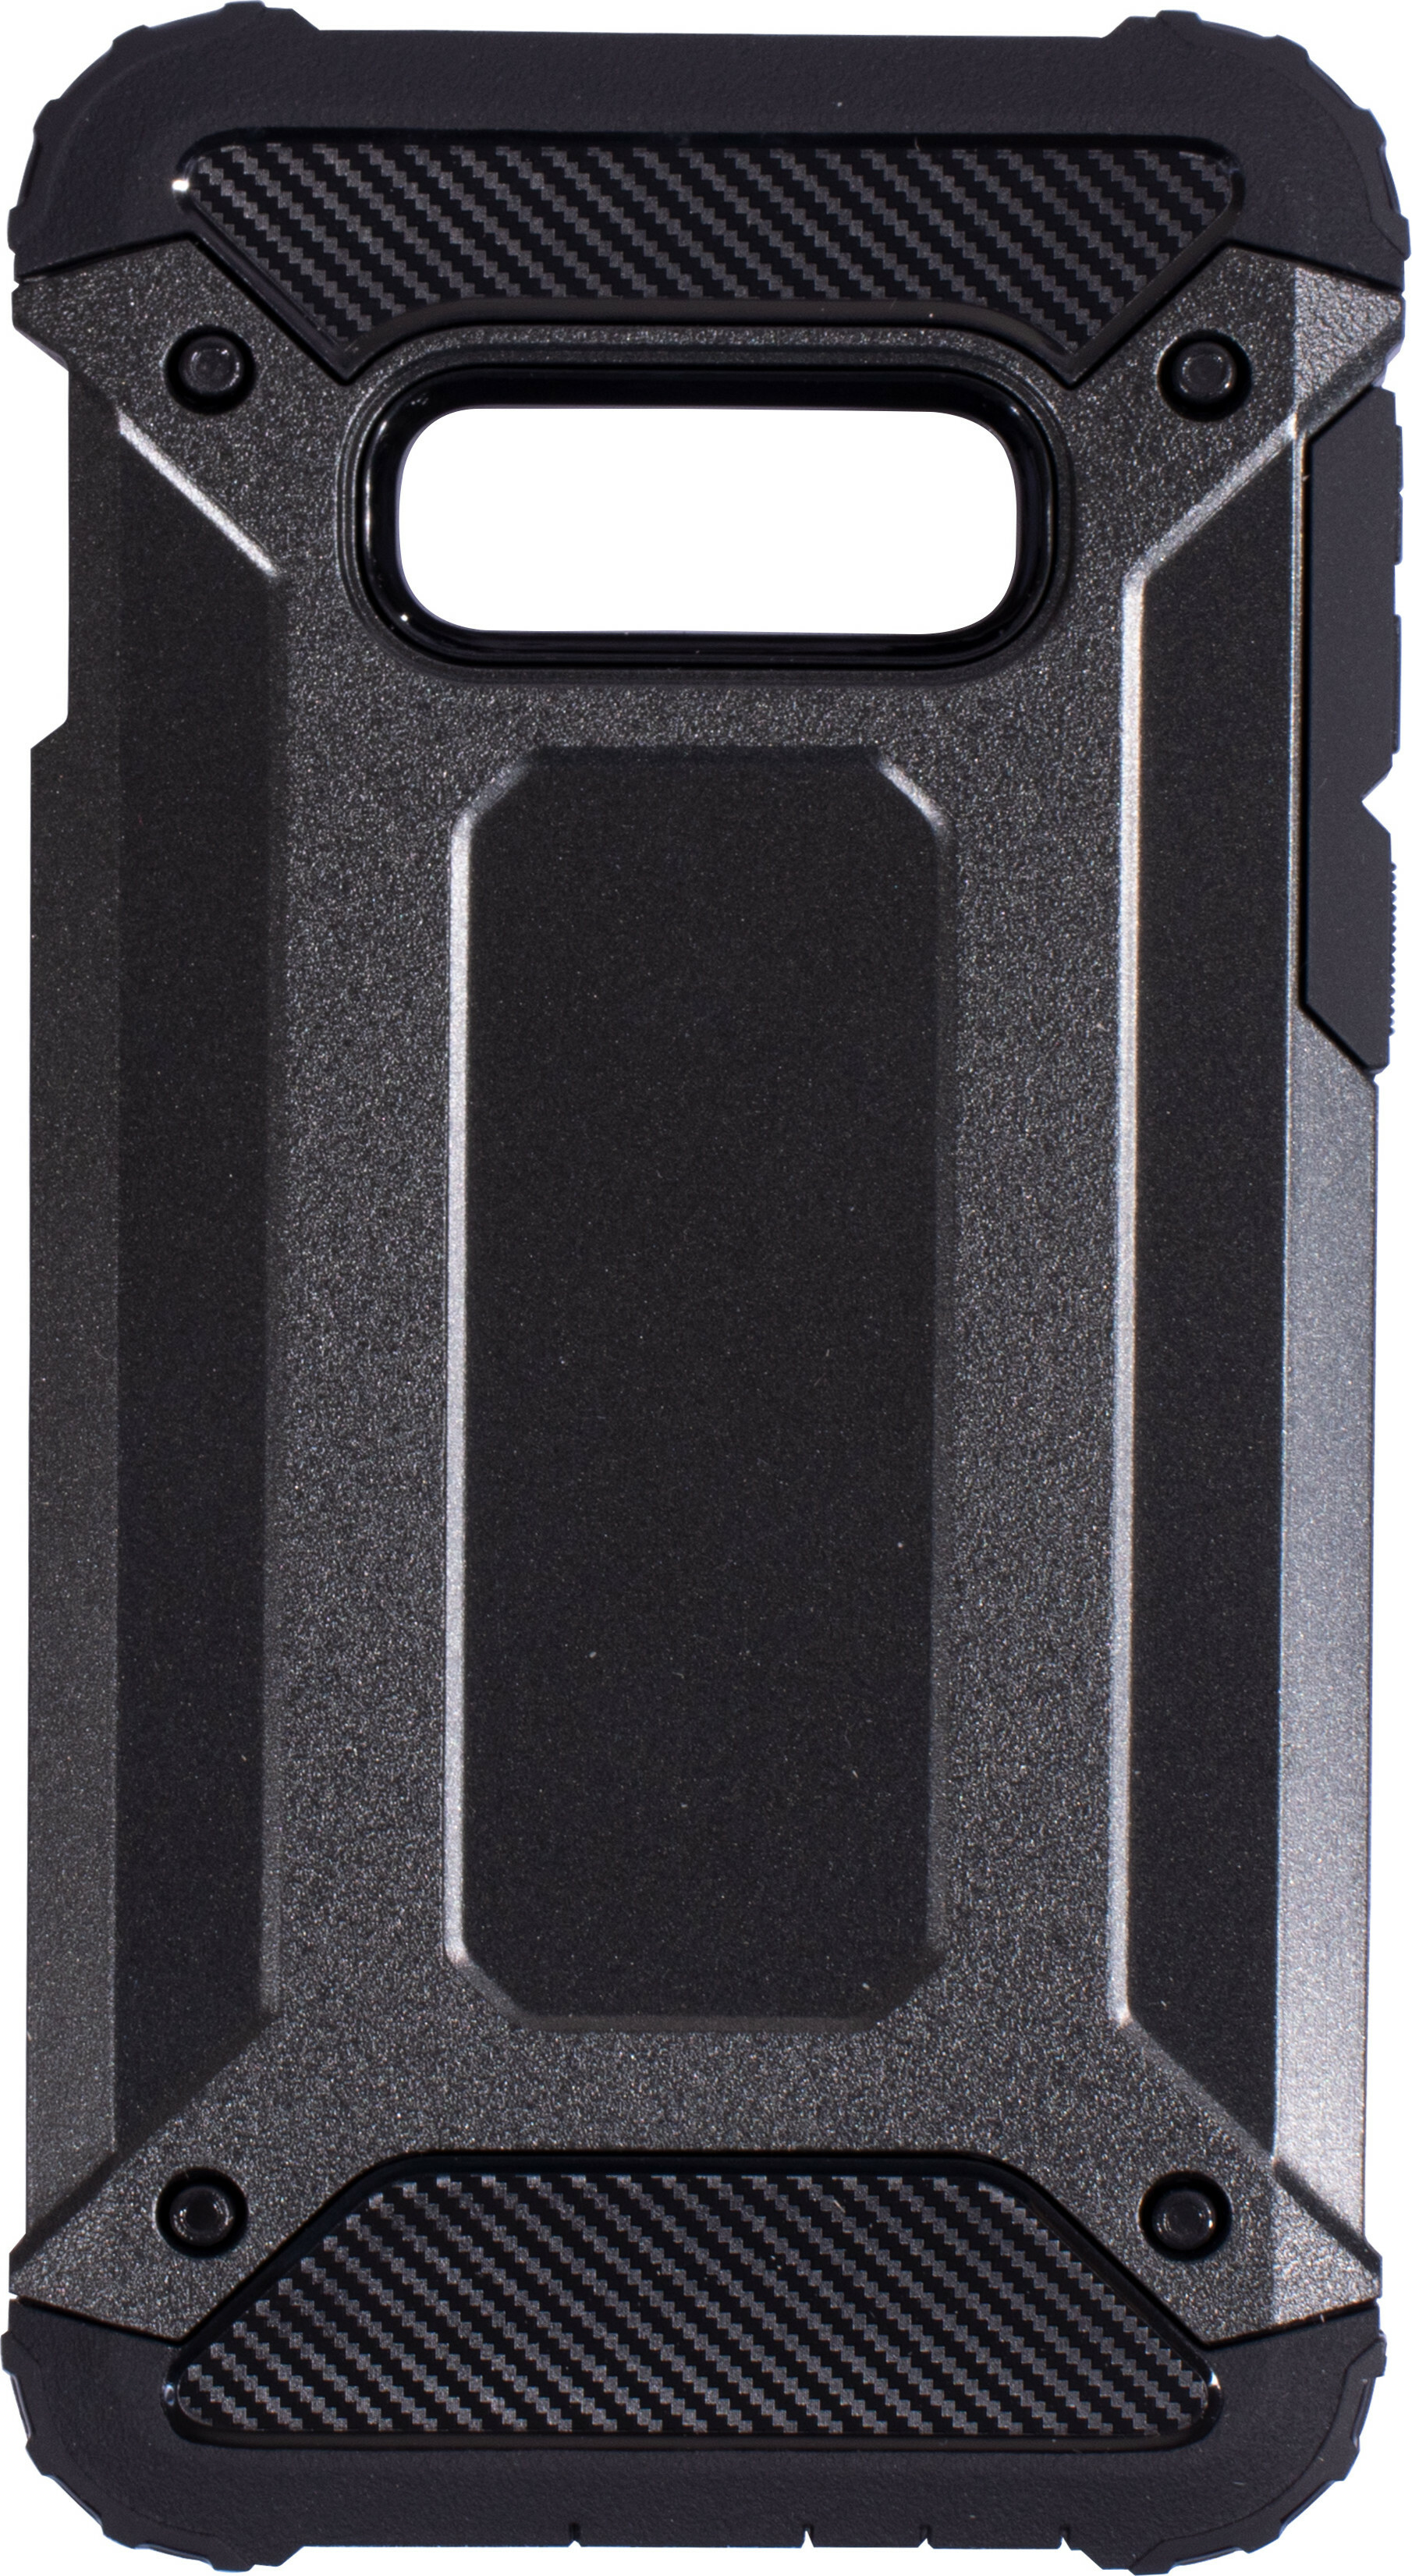 Mobiparts Rugged Shield Case Samsung Galaxy S10e Black